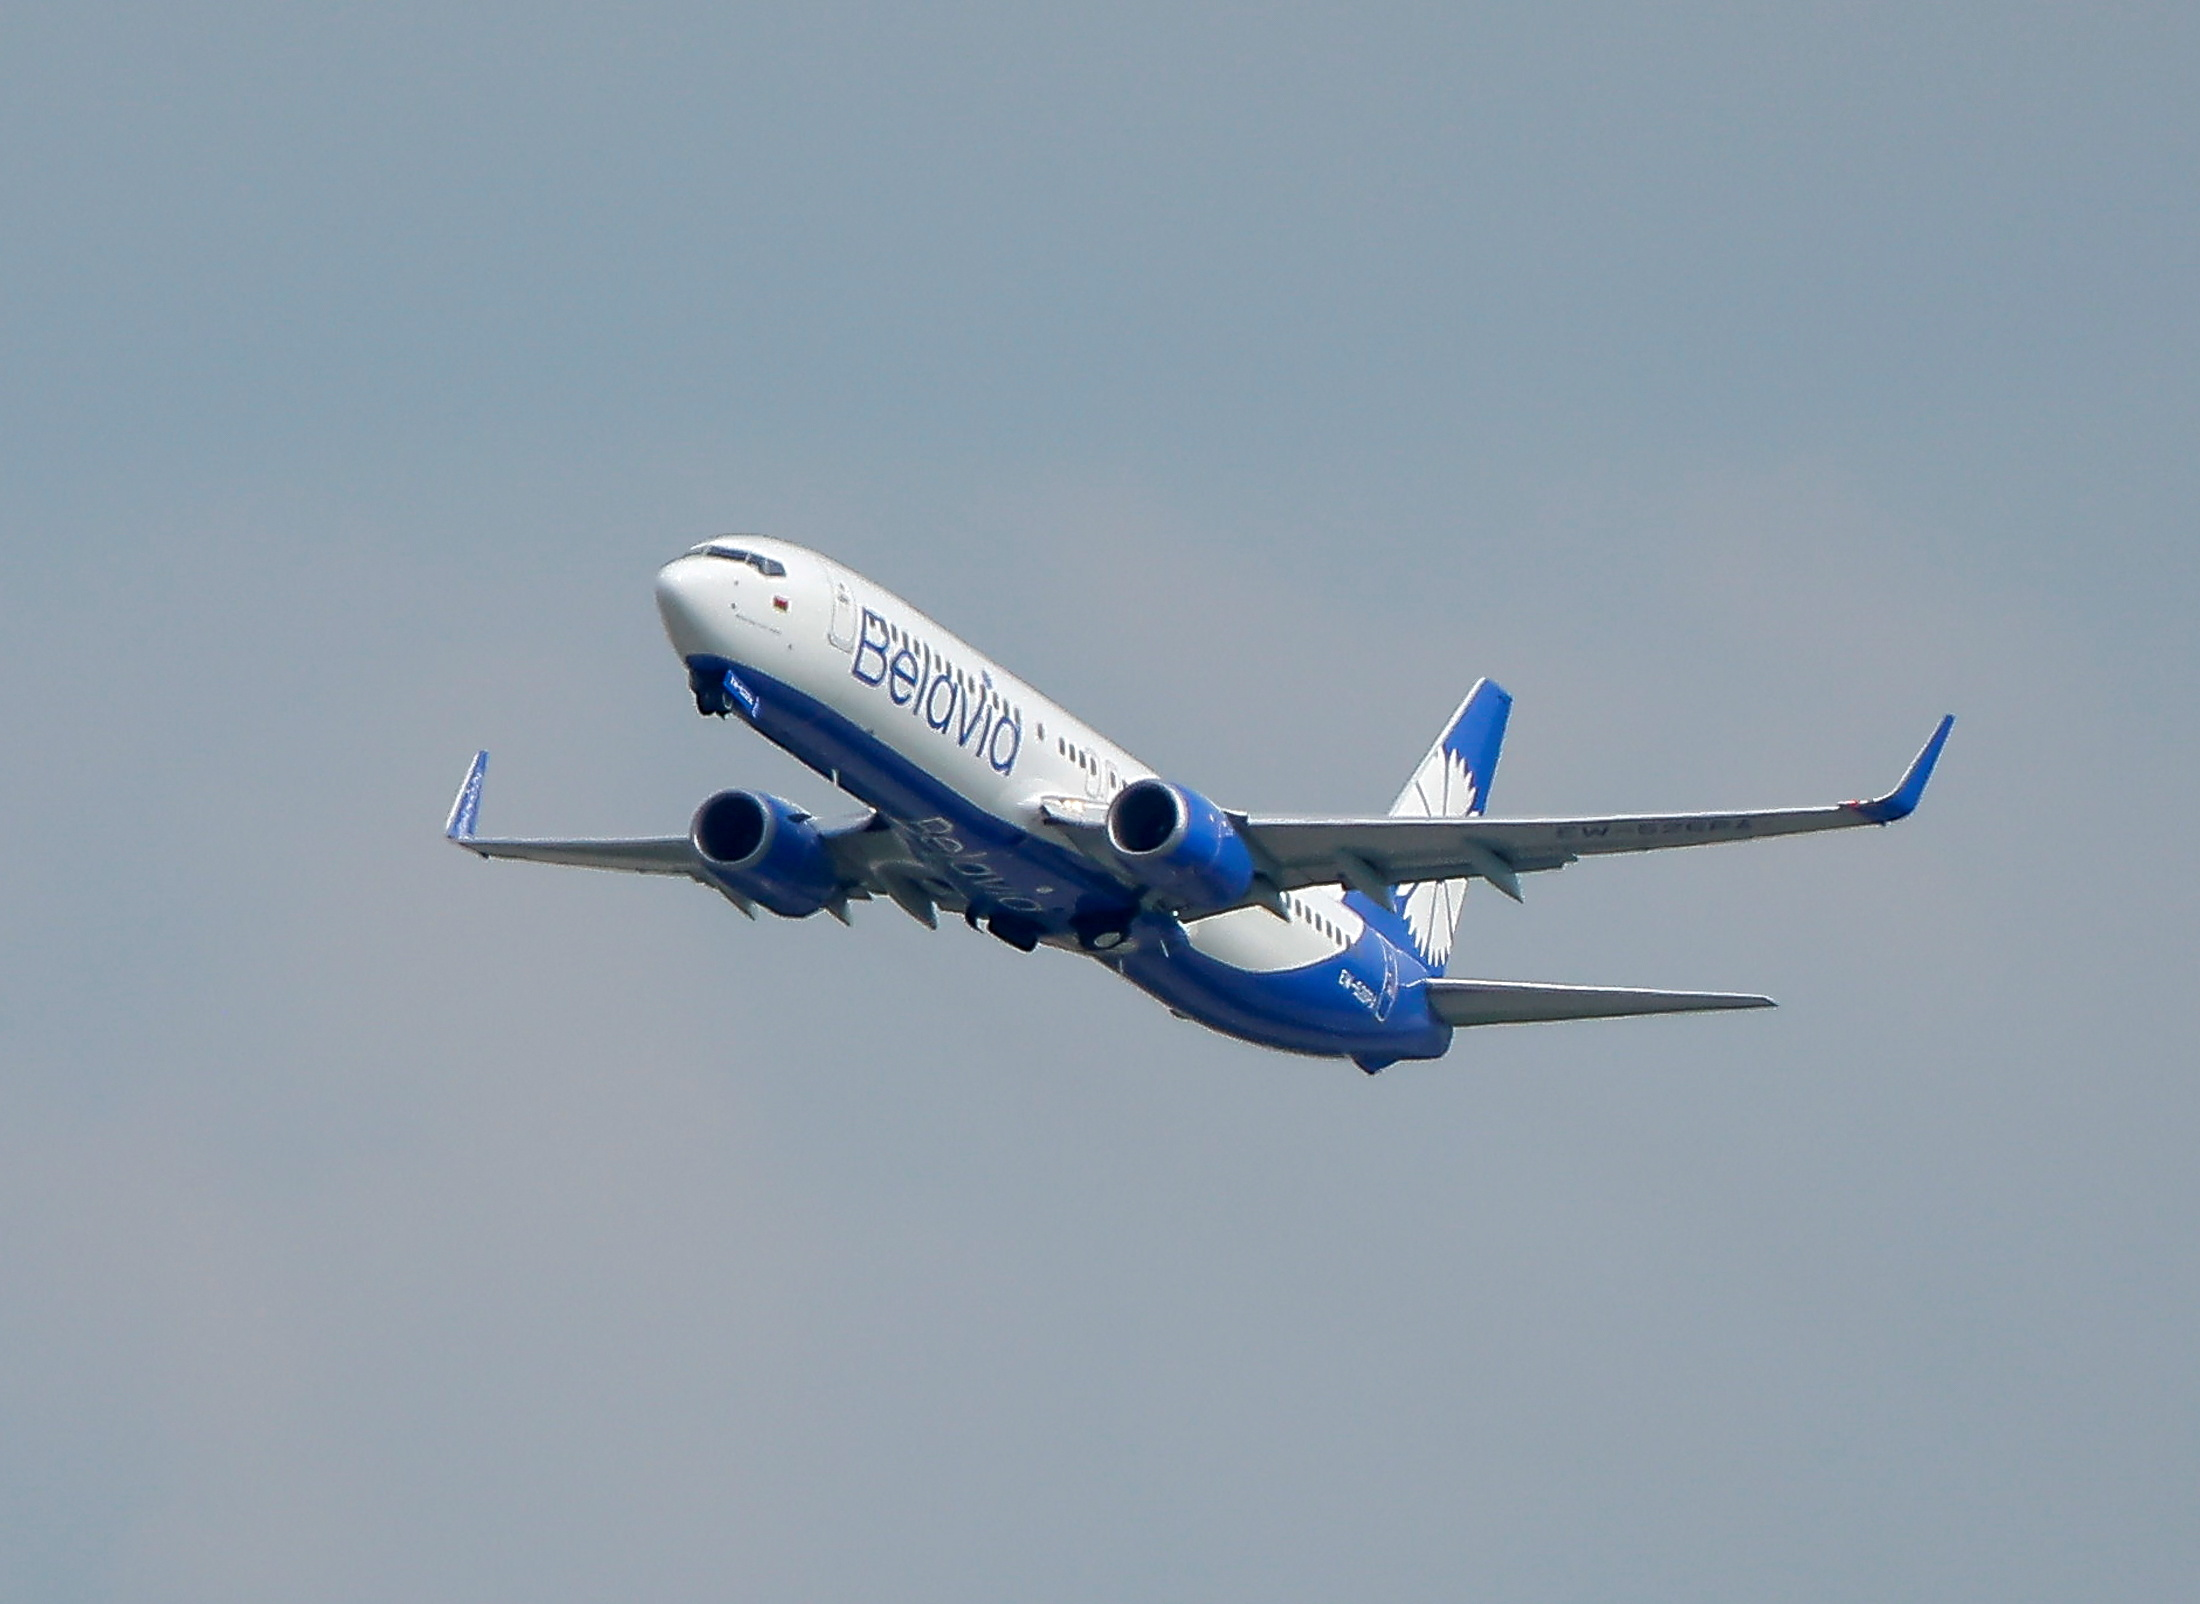 A Boeing 737-800 plane of Belarusian state carrier Belavia takes off at the Domodedovo Airport outside Moscow, Russia May 28, 2021.  REUTERS/Maxim Shemetov/File Photo